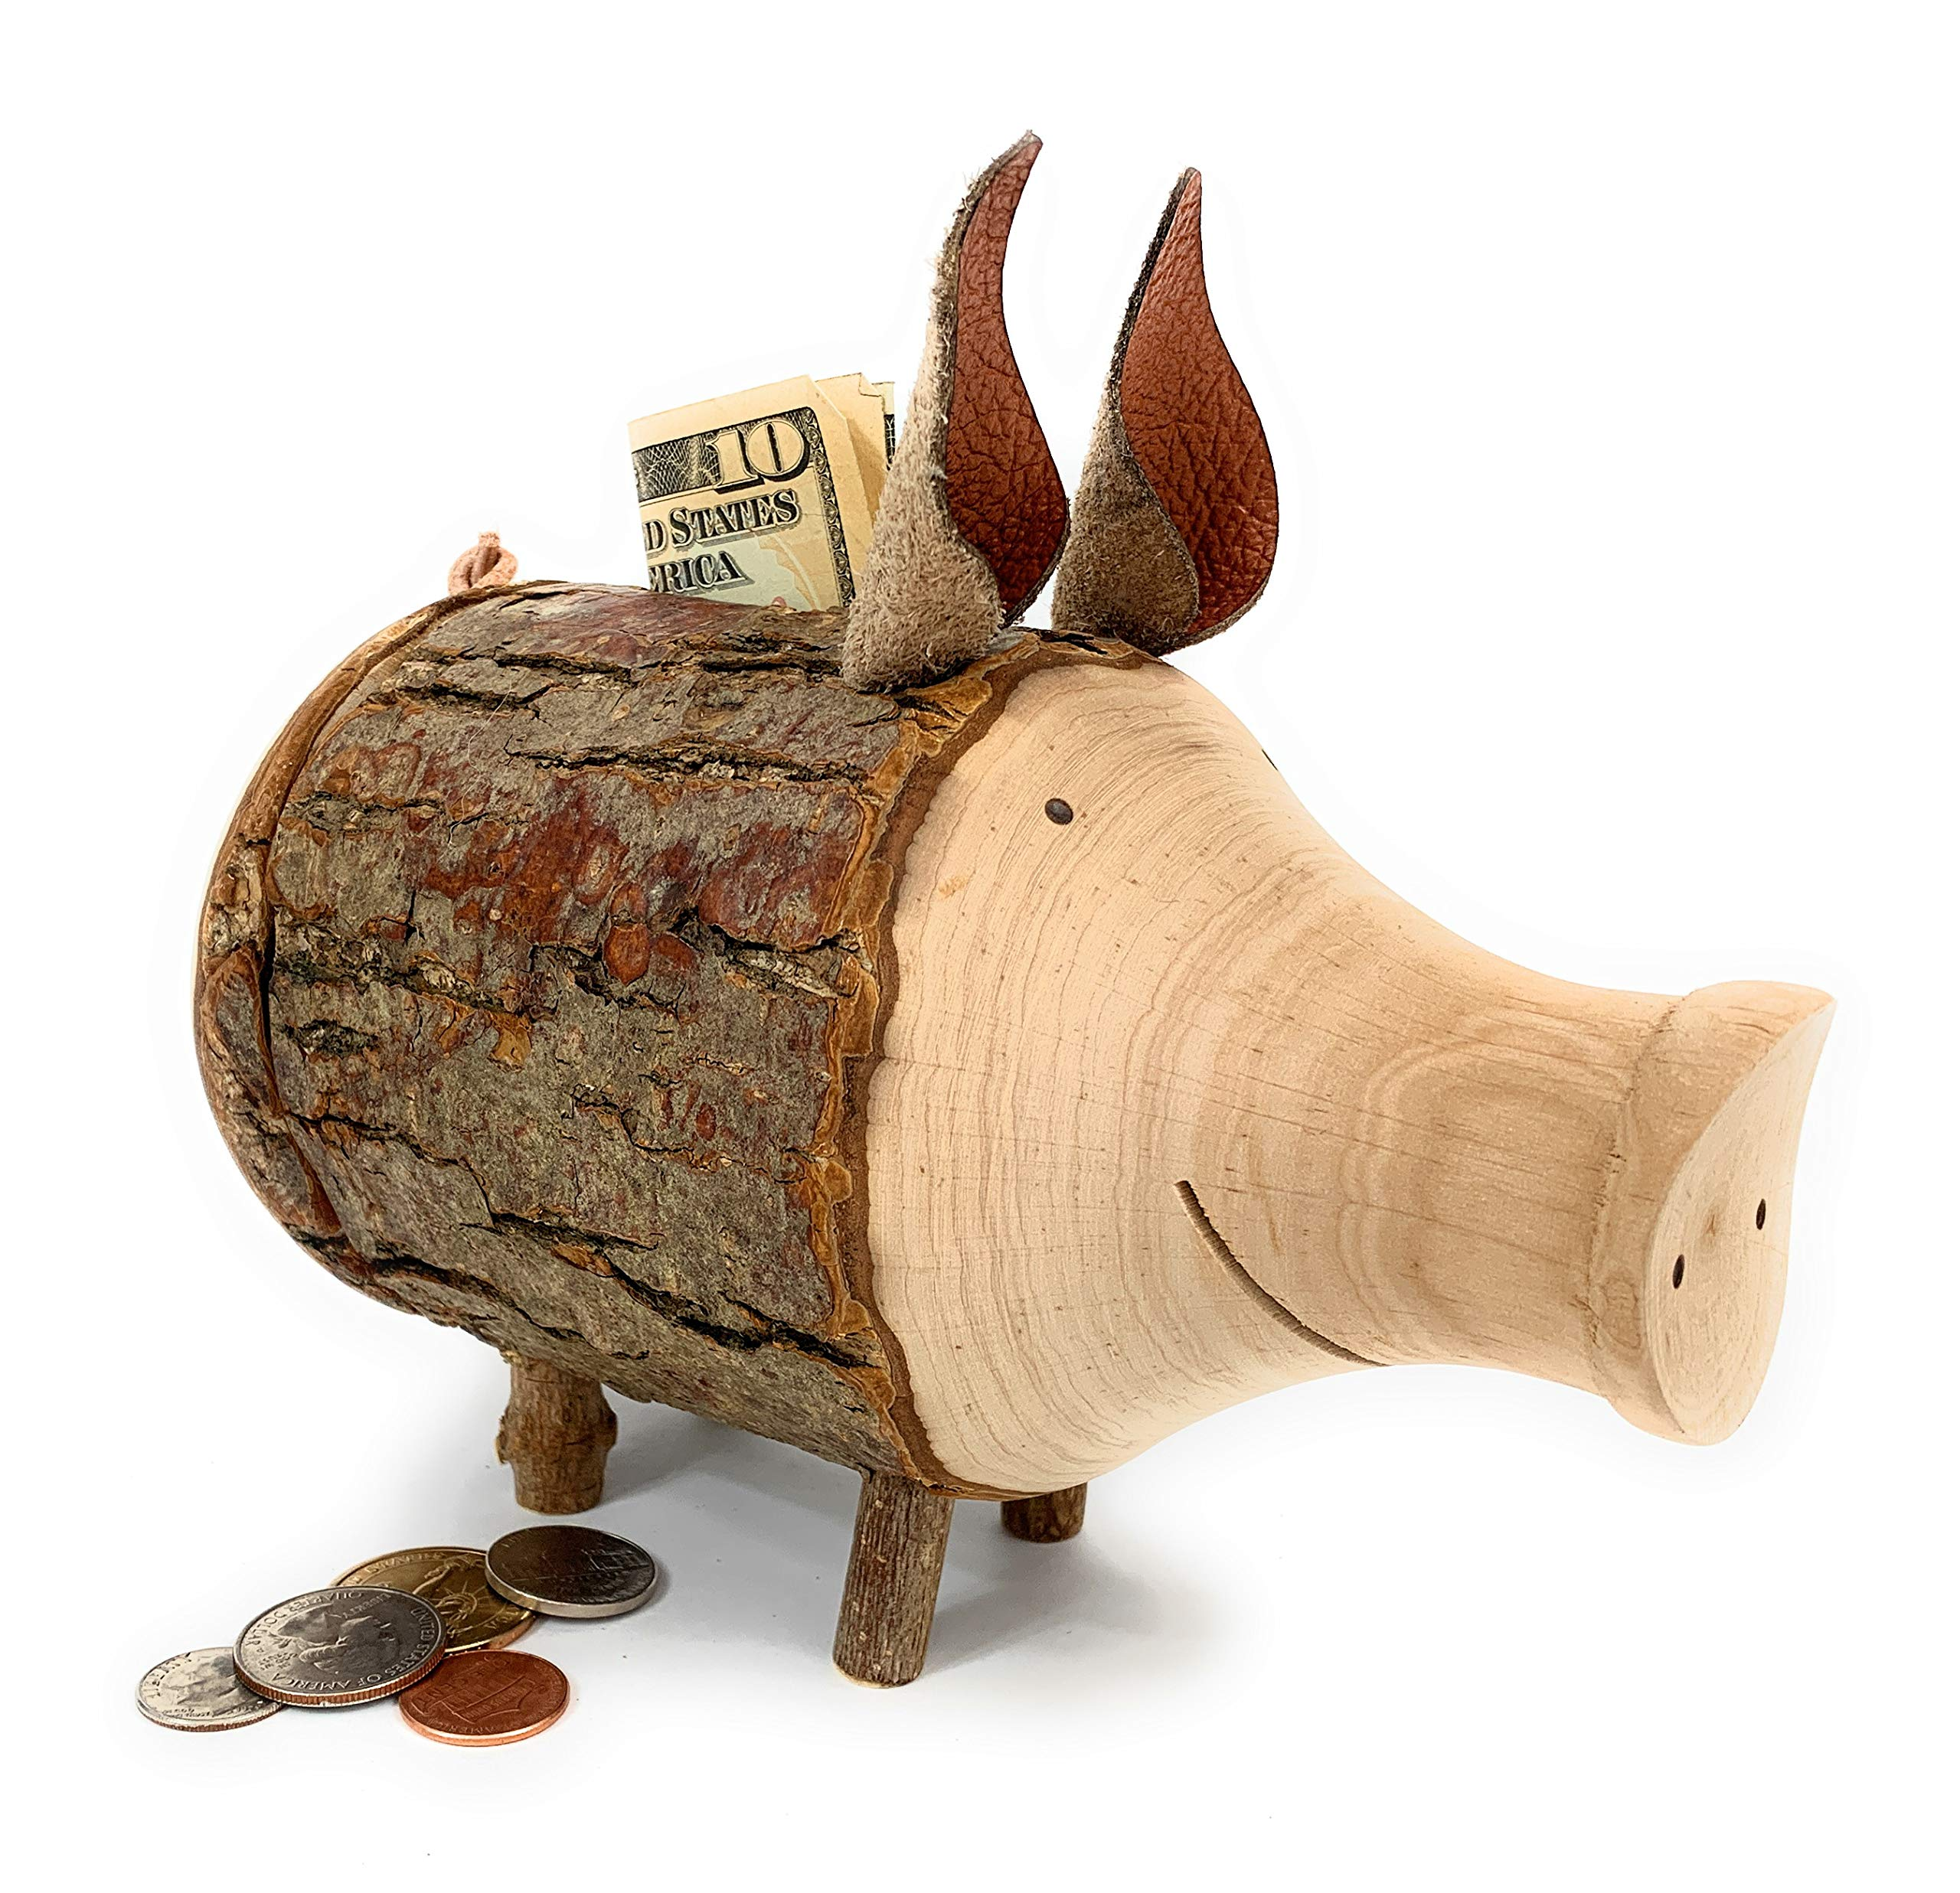 Forest Decor Cute Kid's Piggy Bank for Boys and Girls, Handmade Wood Craftsmanship, Cute Unfinished Bark, Stores Cash and Coins, Made in Germany